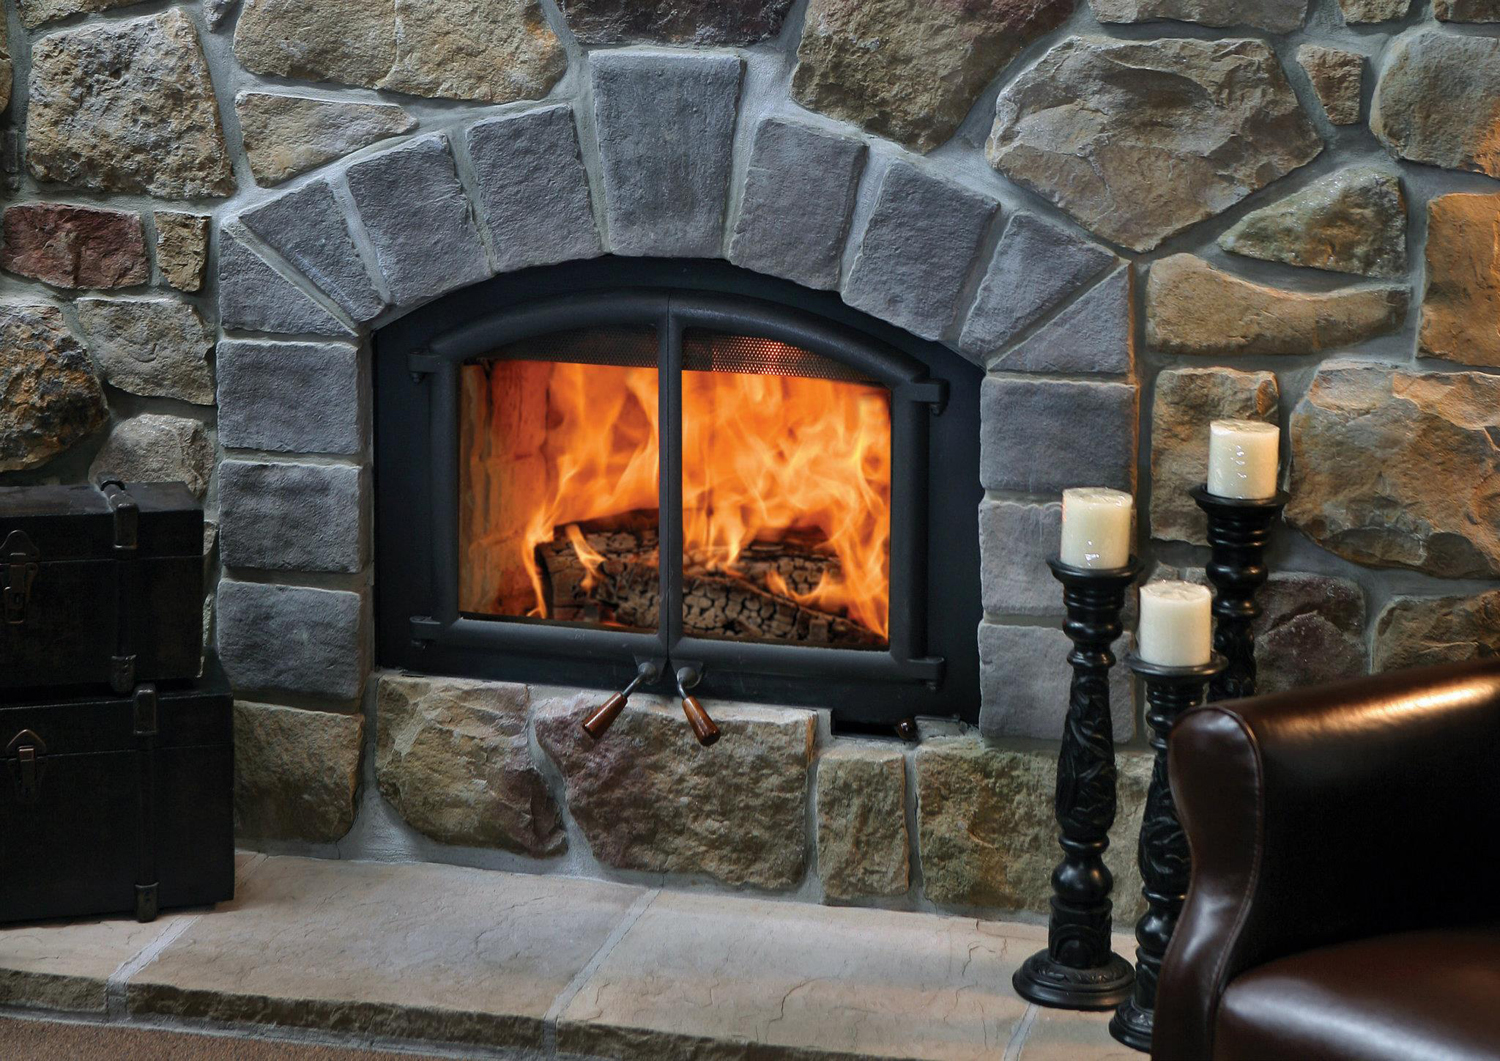 led p electric no with in mounted remote fire northwest fireplaces ice black heat and fireplace wall